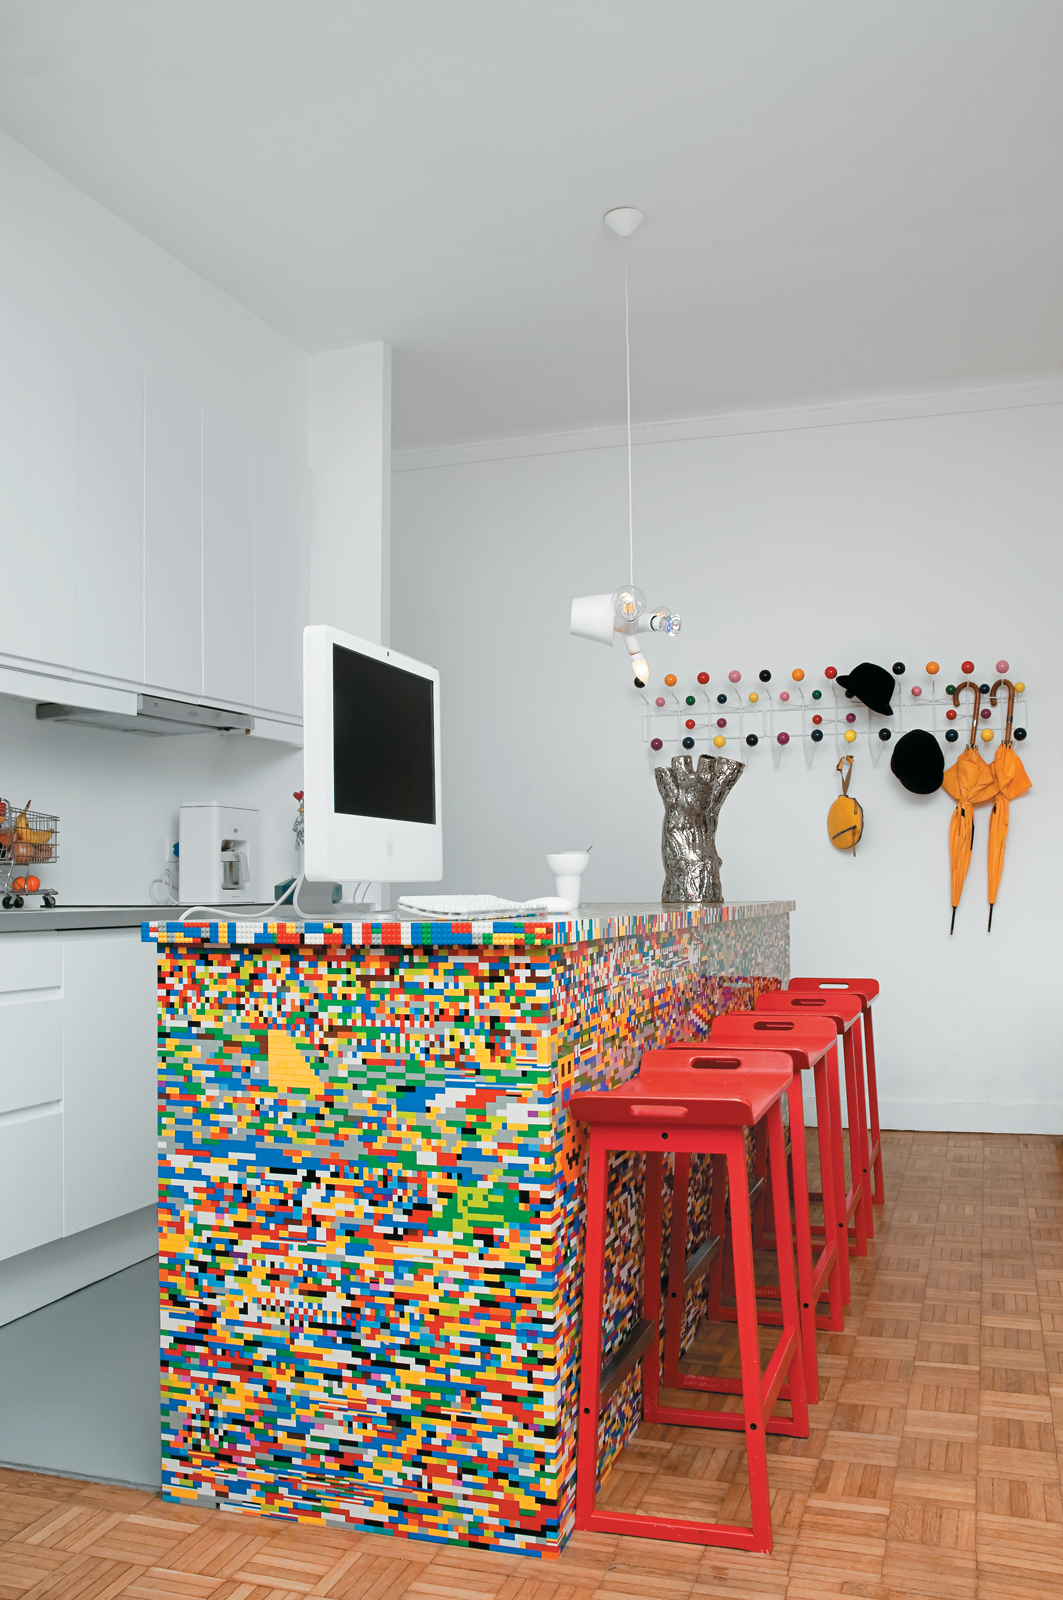 lego island interior kitchen island